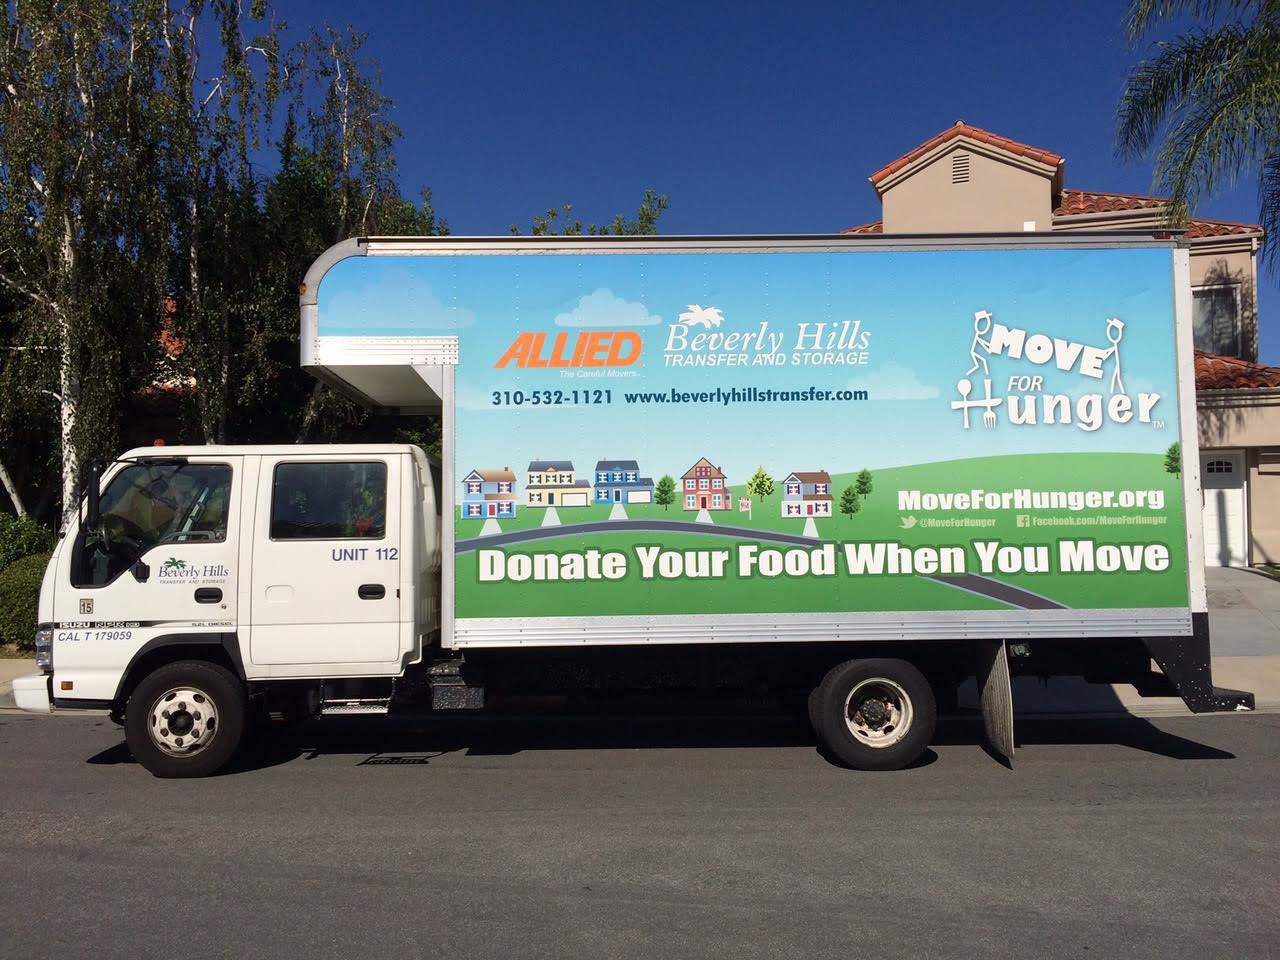 Donate your food when you move